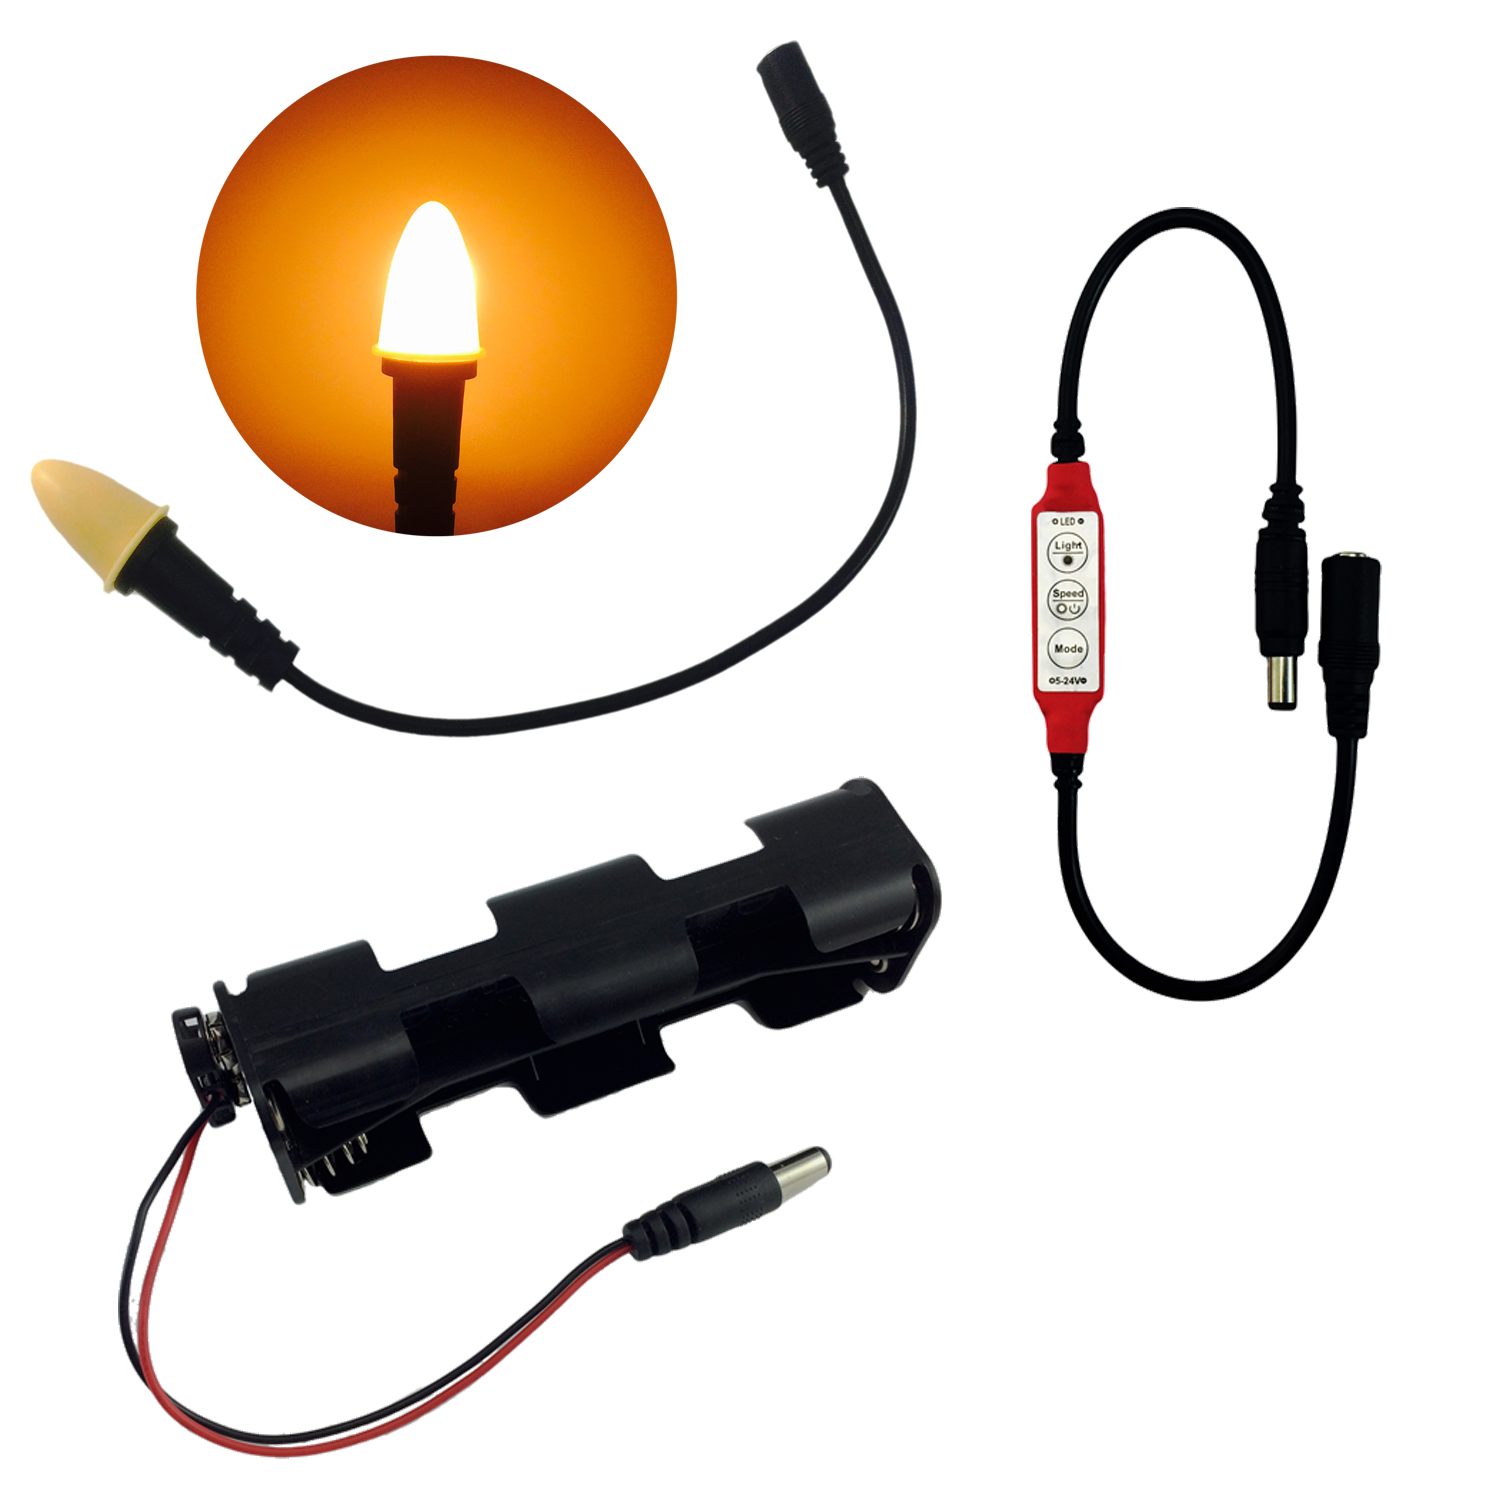 Cable transparent lighting. Candle flame effects light